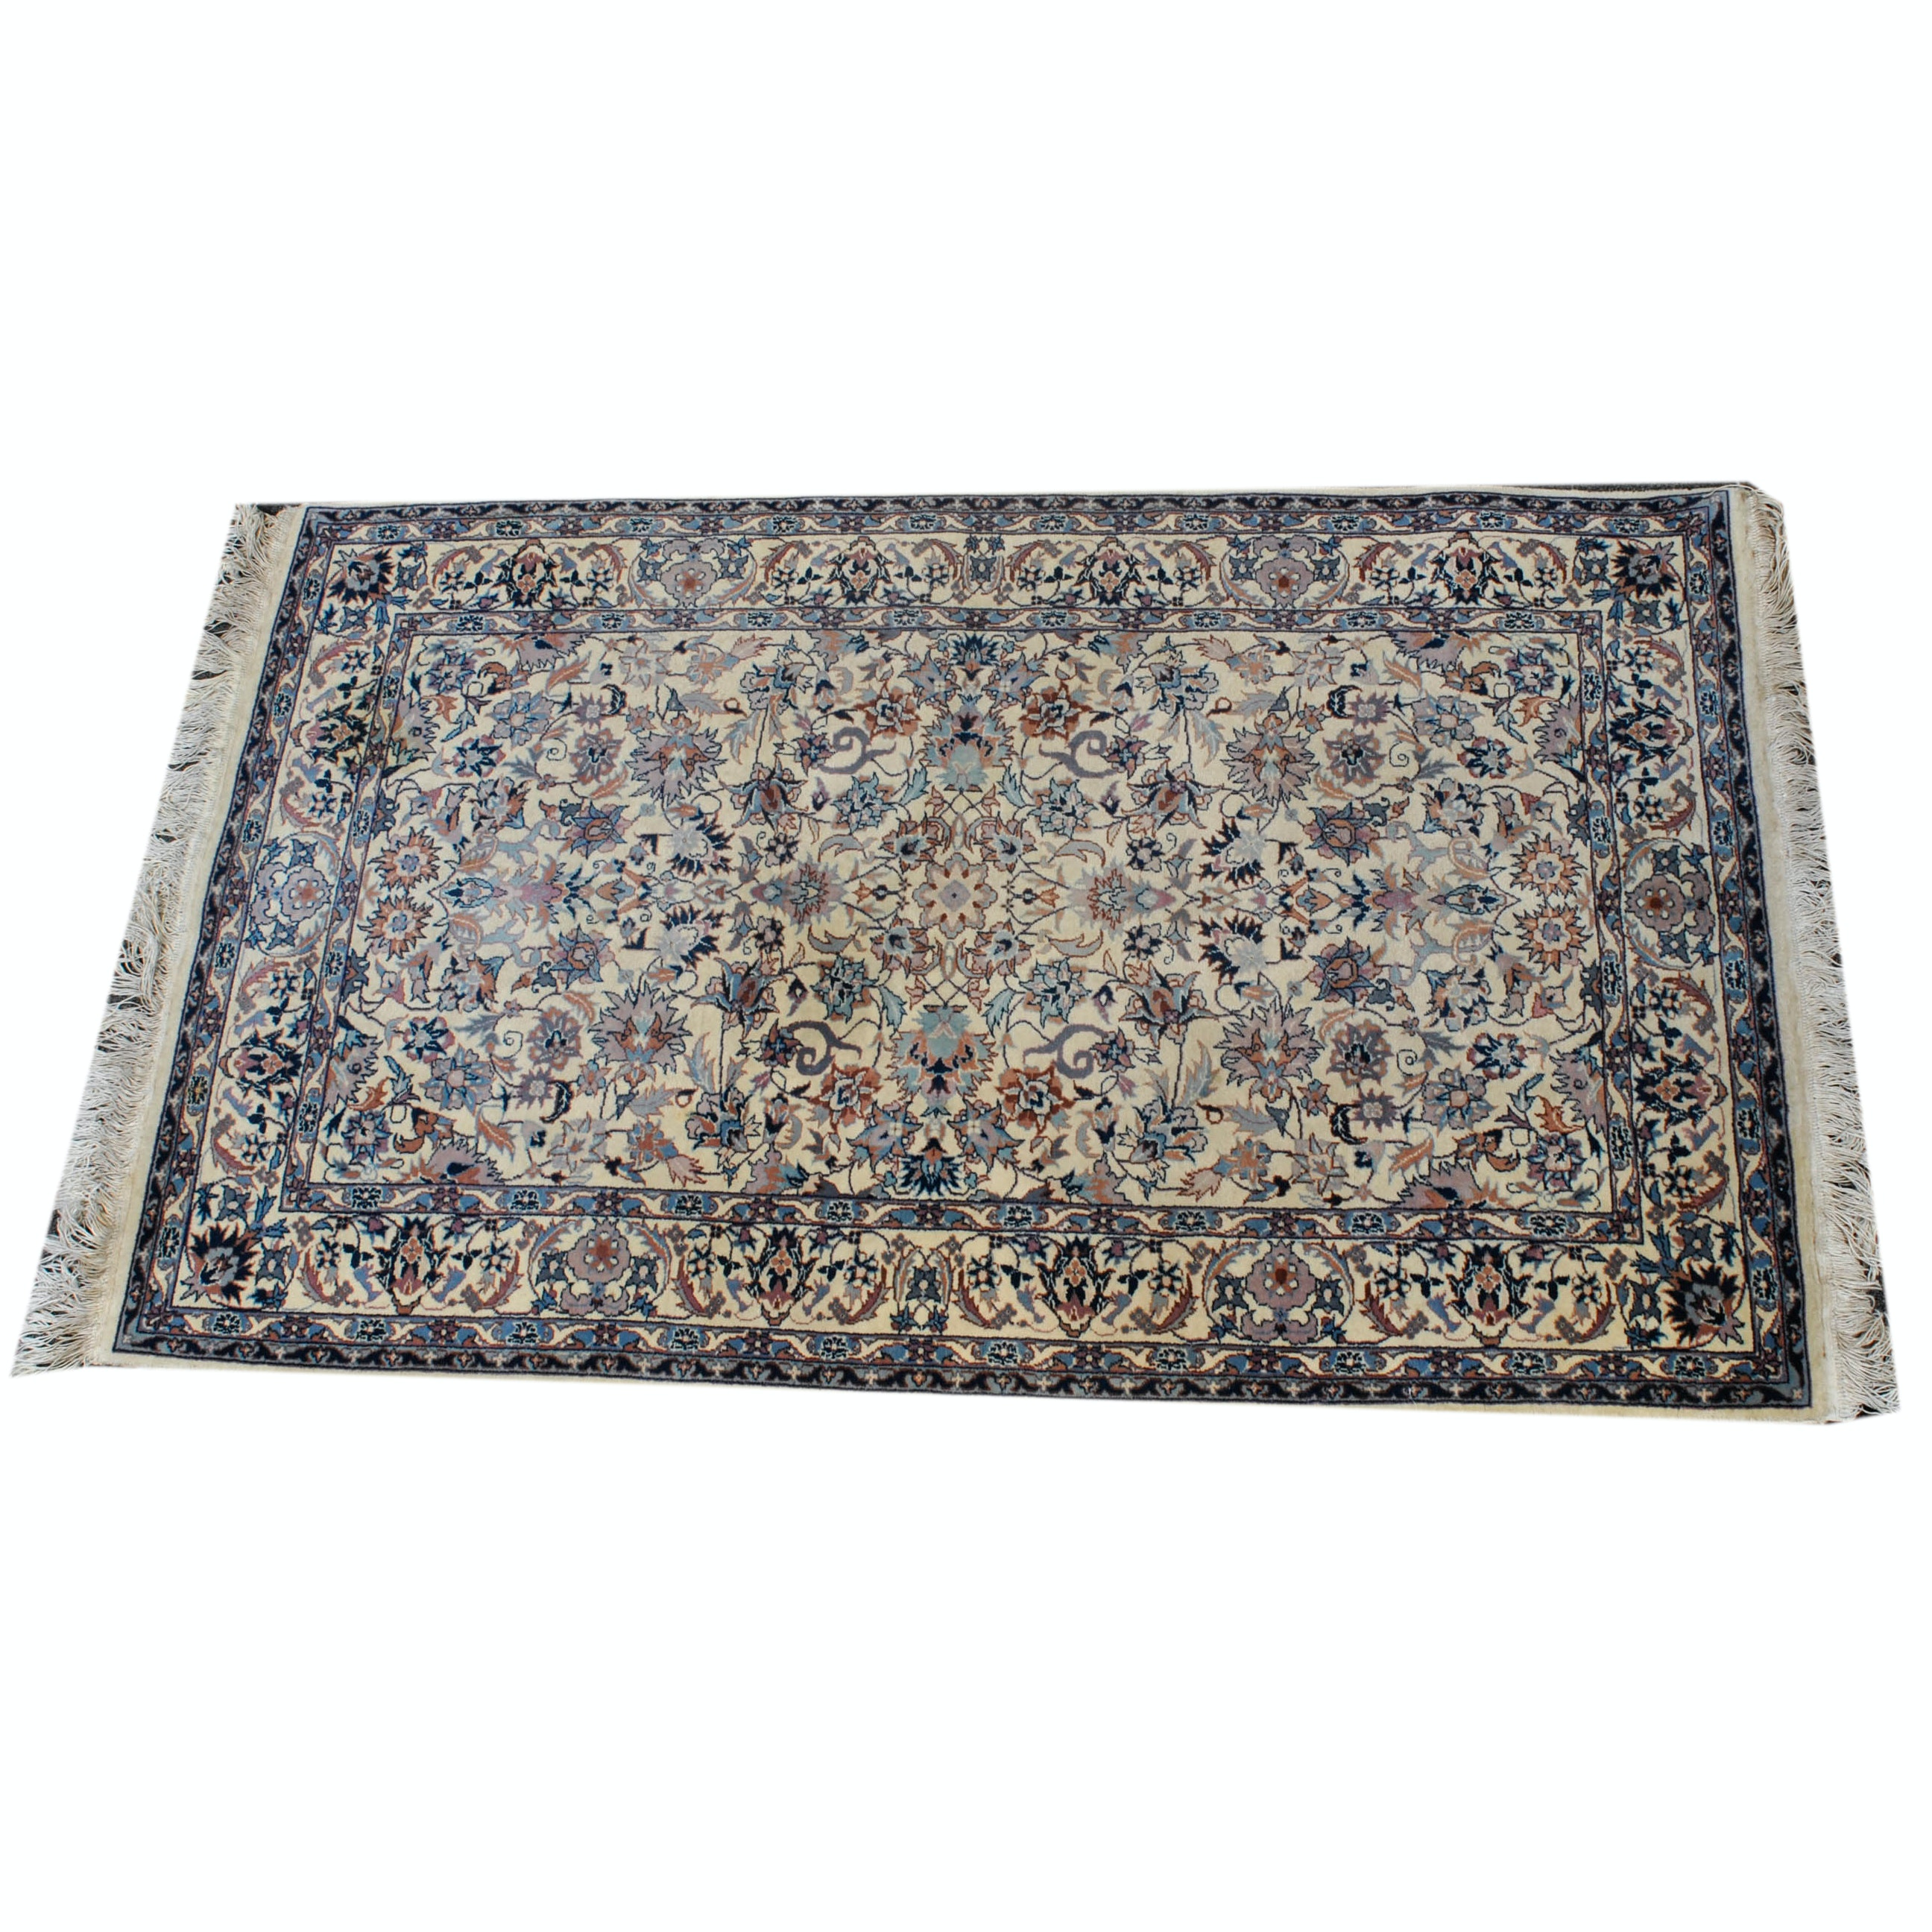 Hand-Knotted Sino-Persian Kashan Style Wool Accent Rug